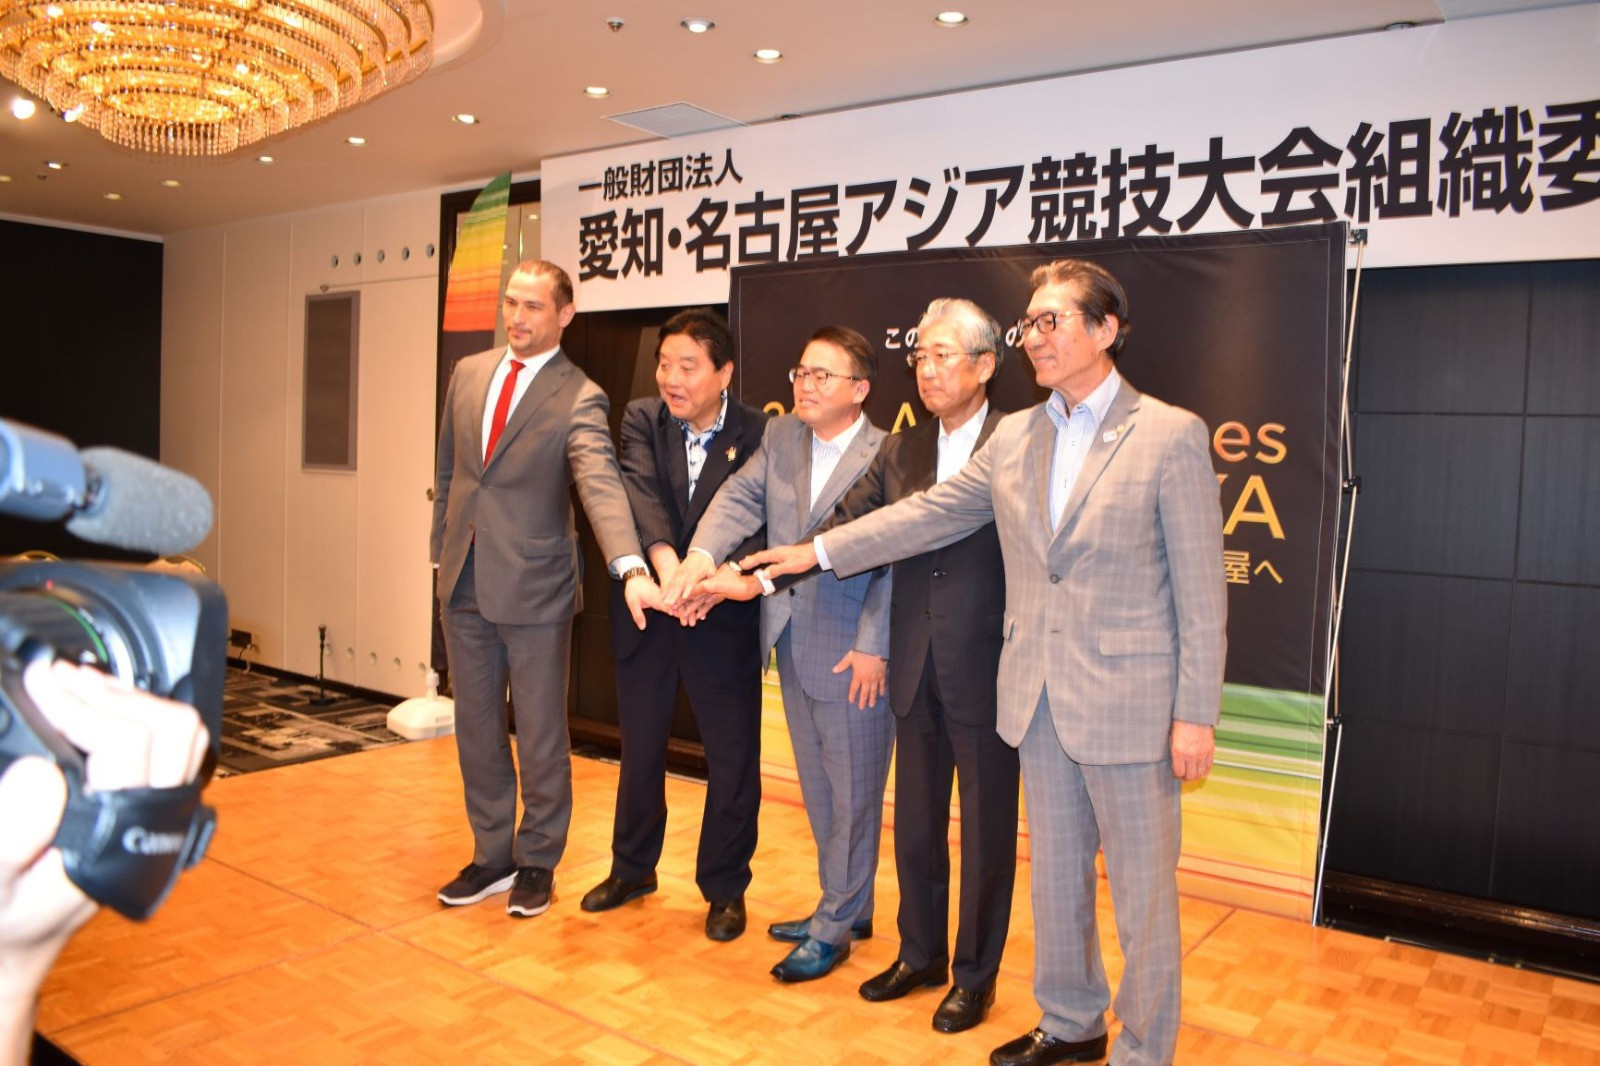 Aichi-Nagoya 2026 Organising Committee set up to prepare for Asian Games